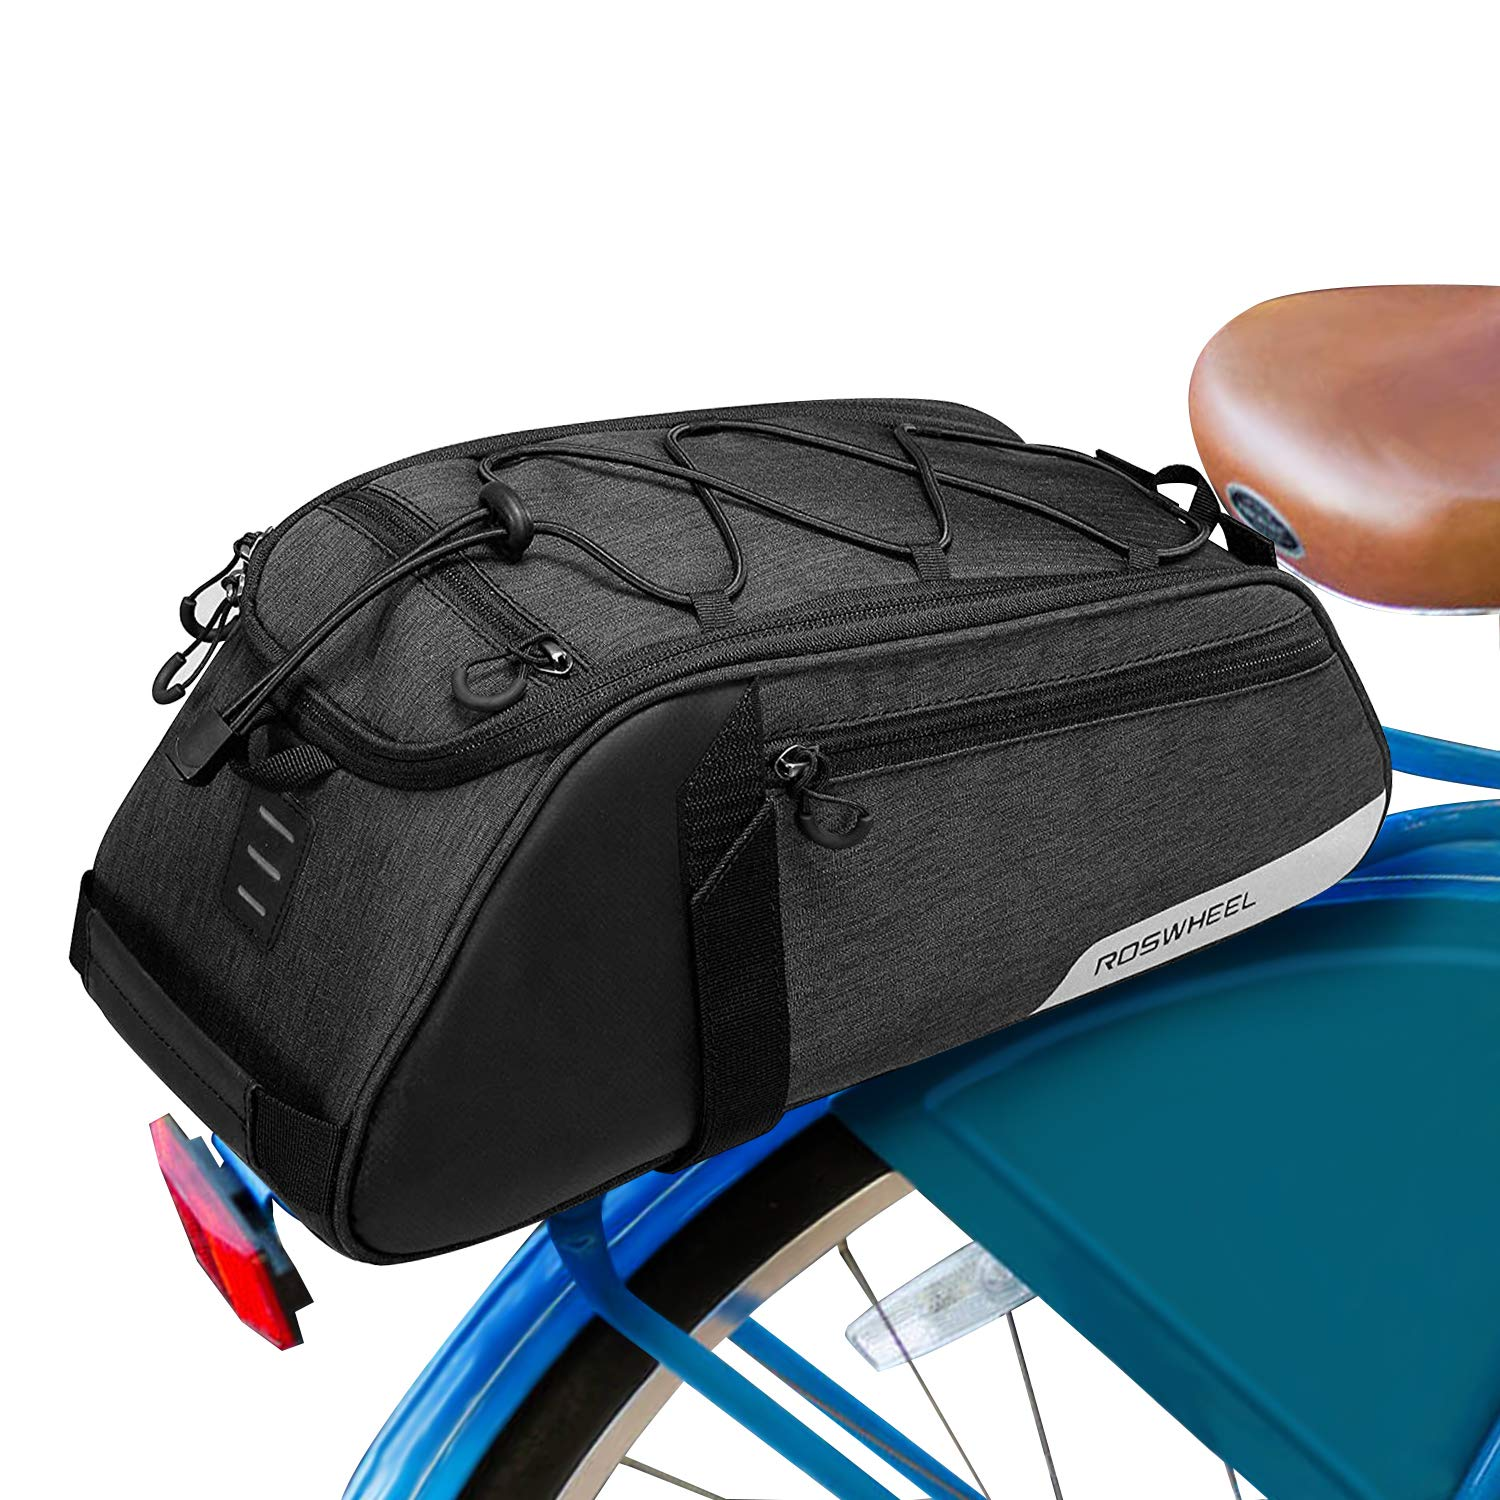 Allnice Bike Trunk Bag 8L Bicycle Seat Pack Panniers Bag for Rear Rack Cycling Saddle Pouch Bag